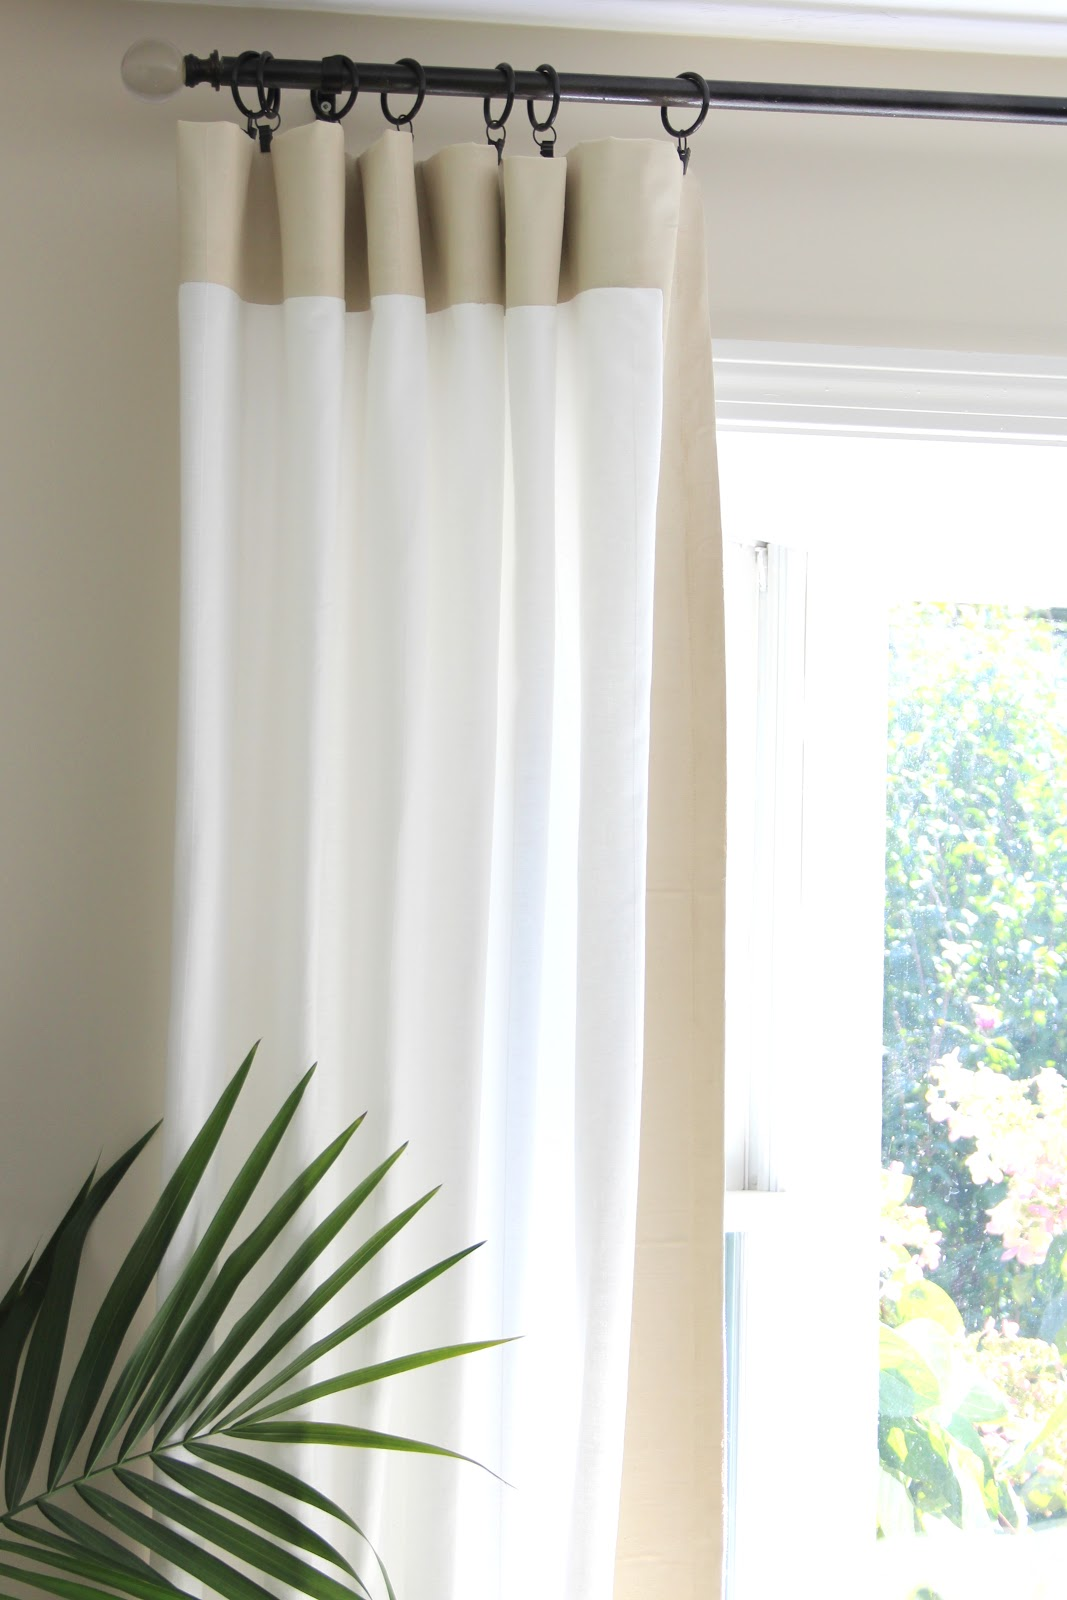 single sliding hardware size open curtain artistry rods rod double of heavy valance center brackets slides duty traverse with originality literarywondrous full kirsch curtains